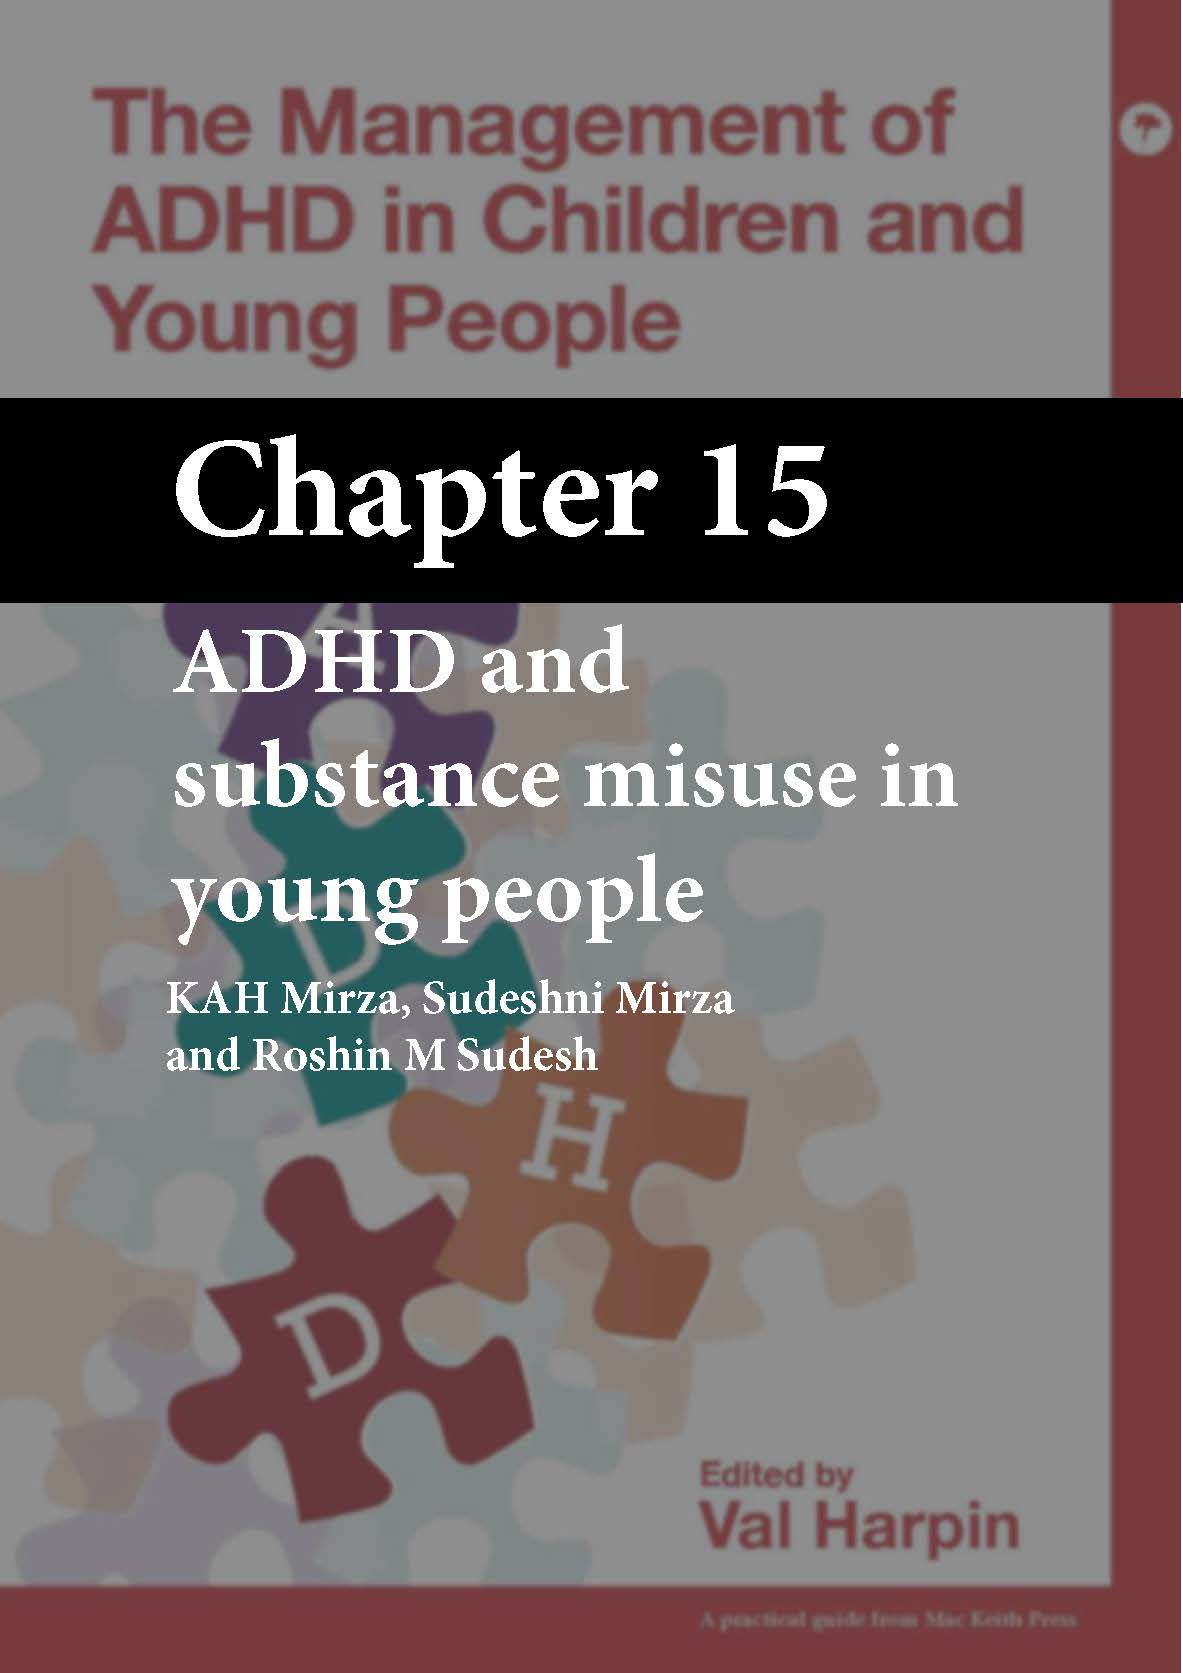 The Management of ADHD in Children and Young People, Harpin, Chapter 15 cover